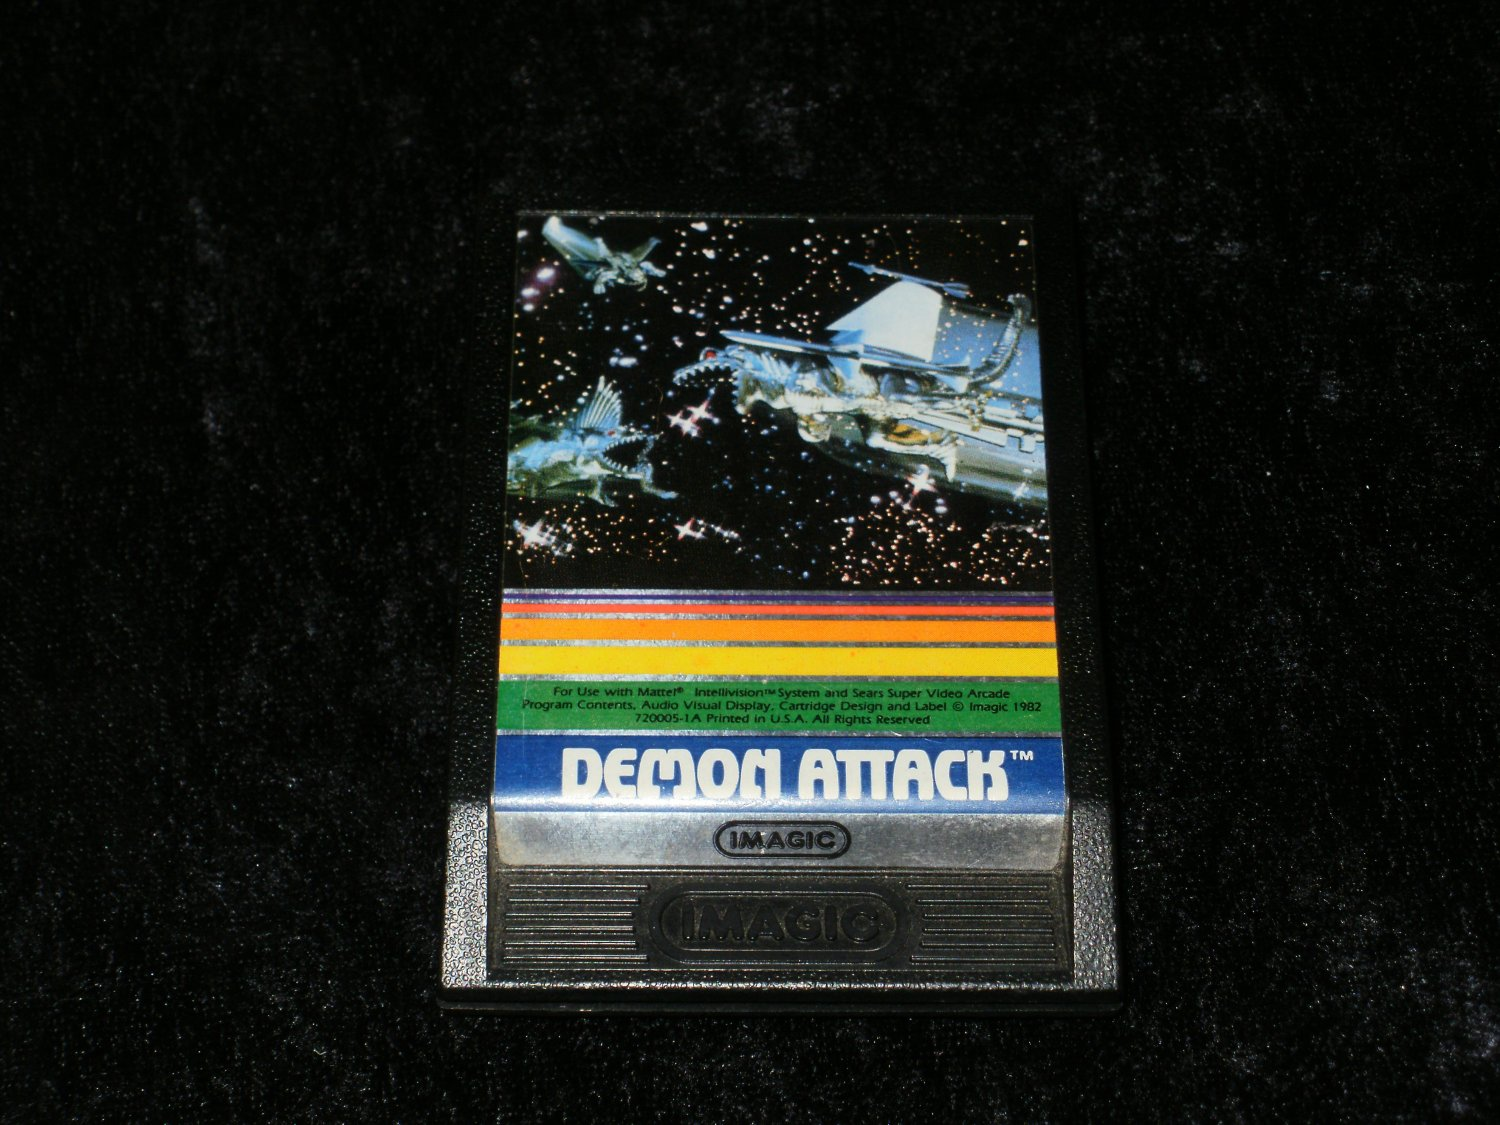 Demon Attack - Mattel Intellivision